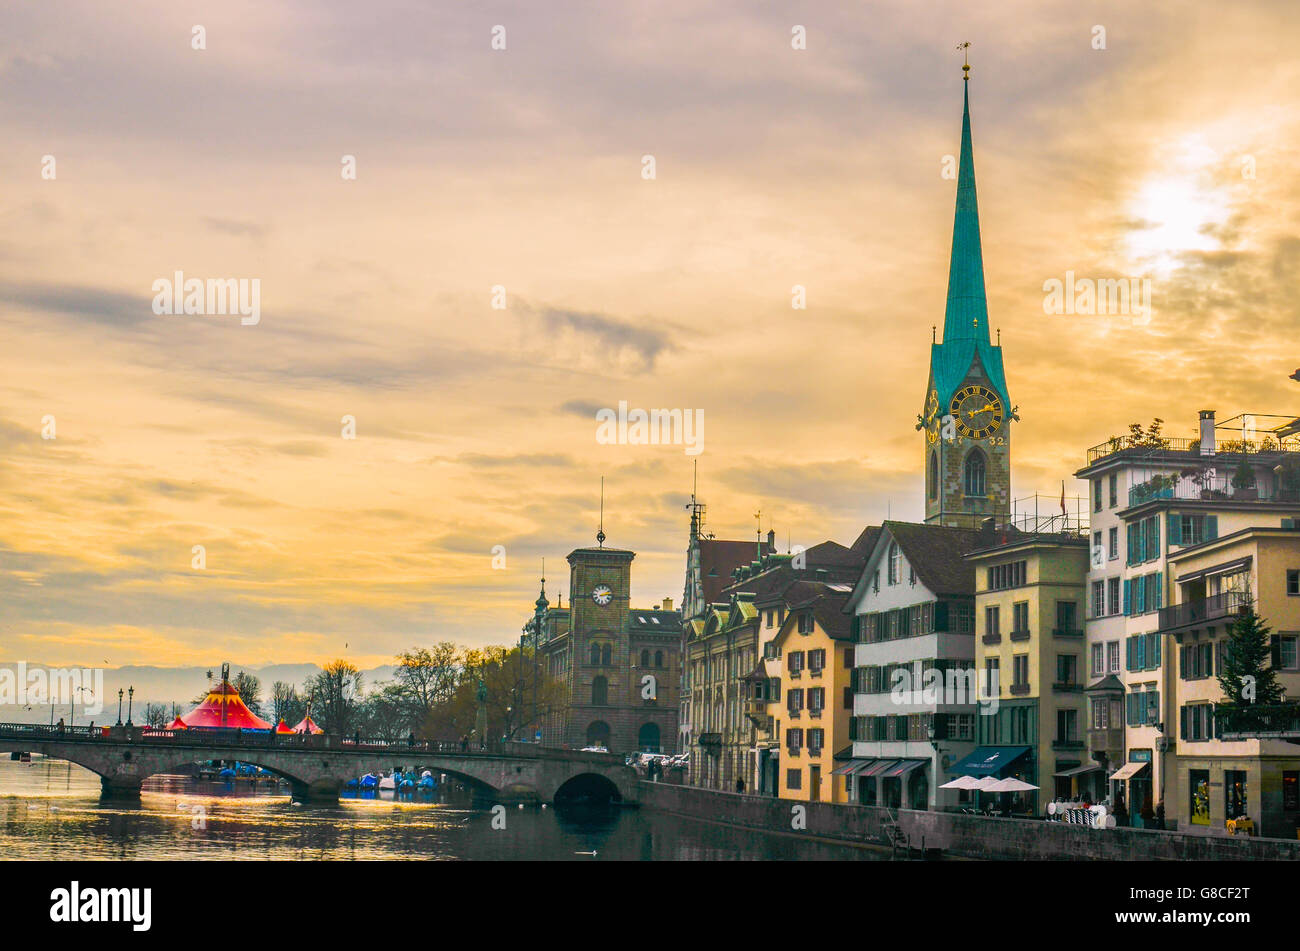 Old town of Zurich along the Limmat river. - Stock Image